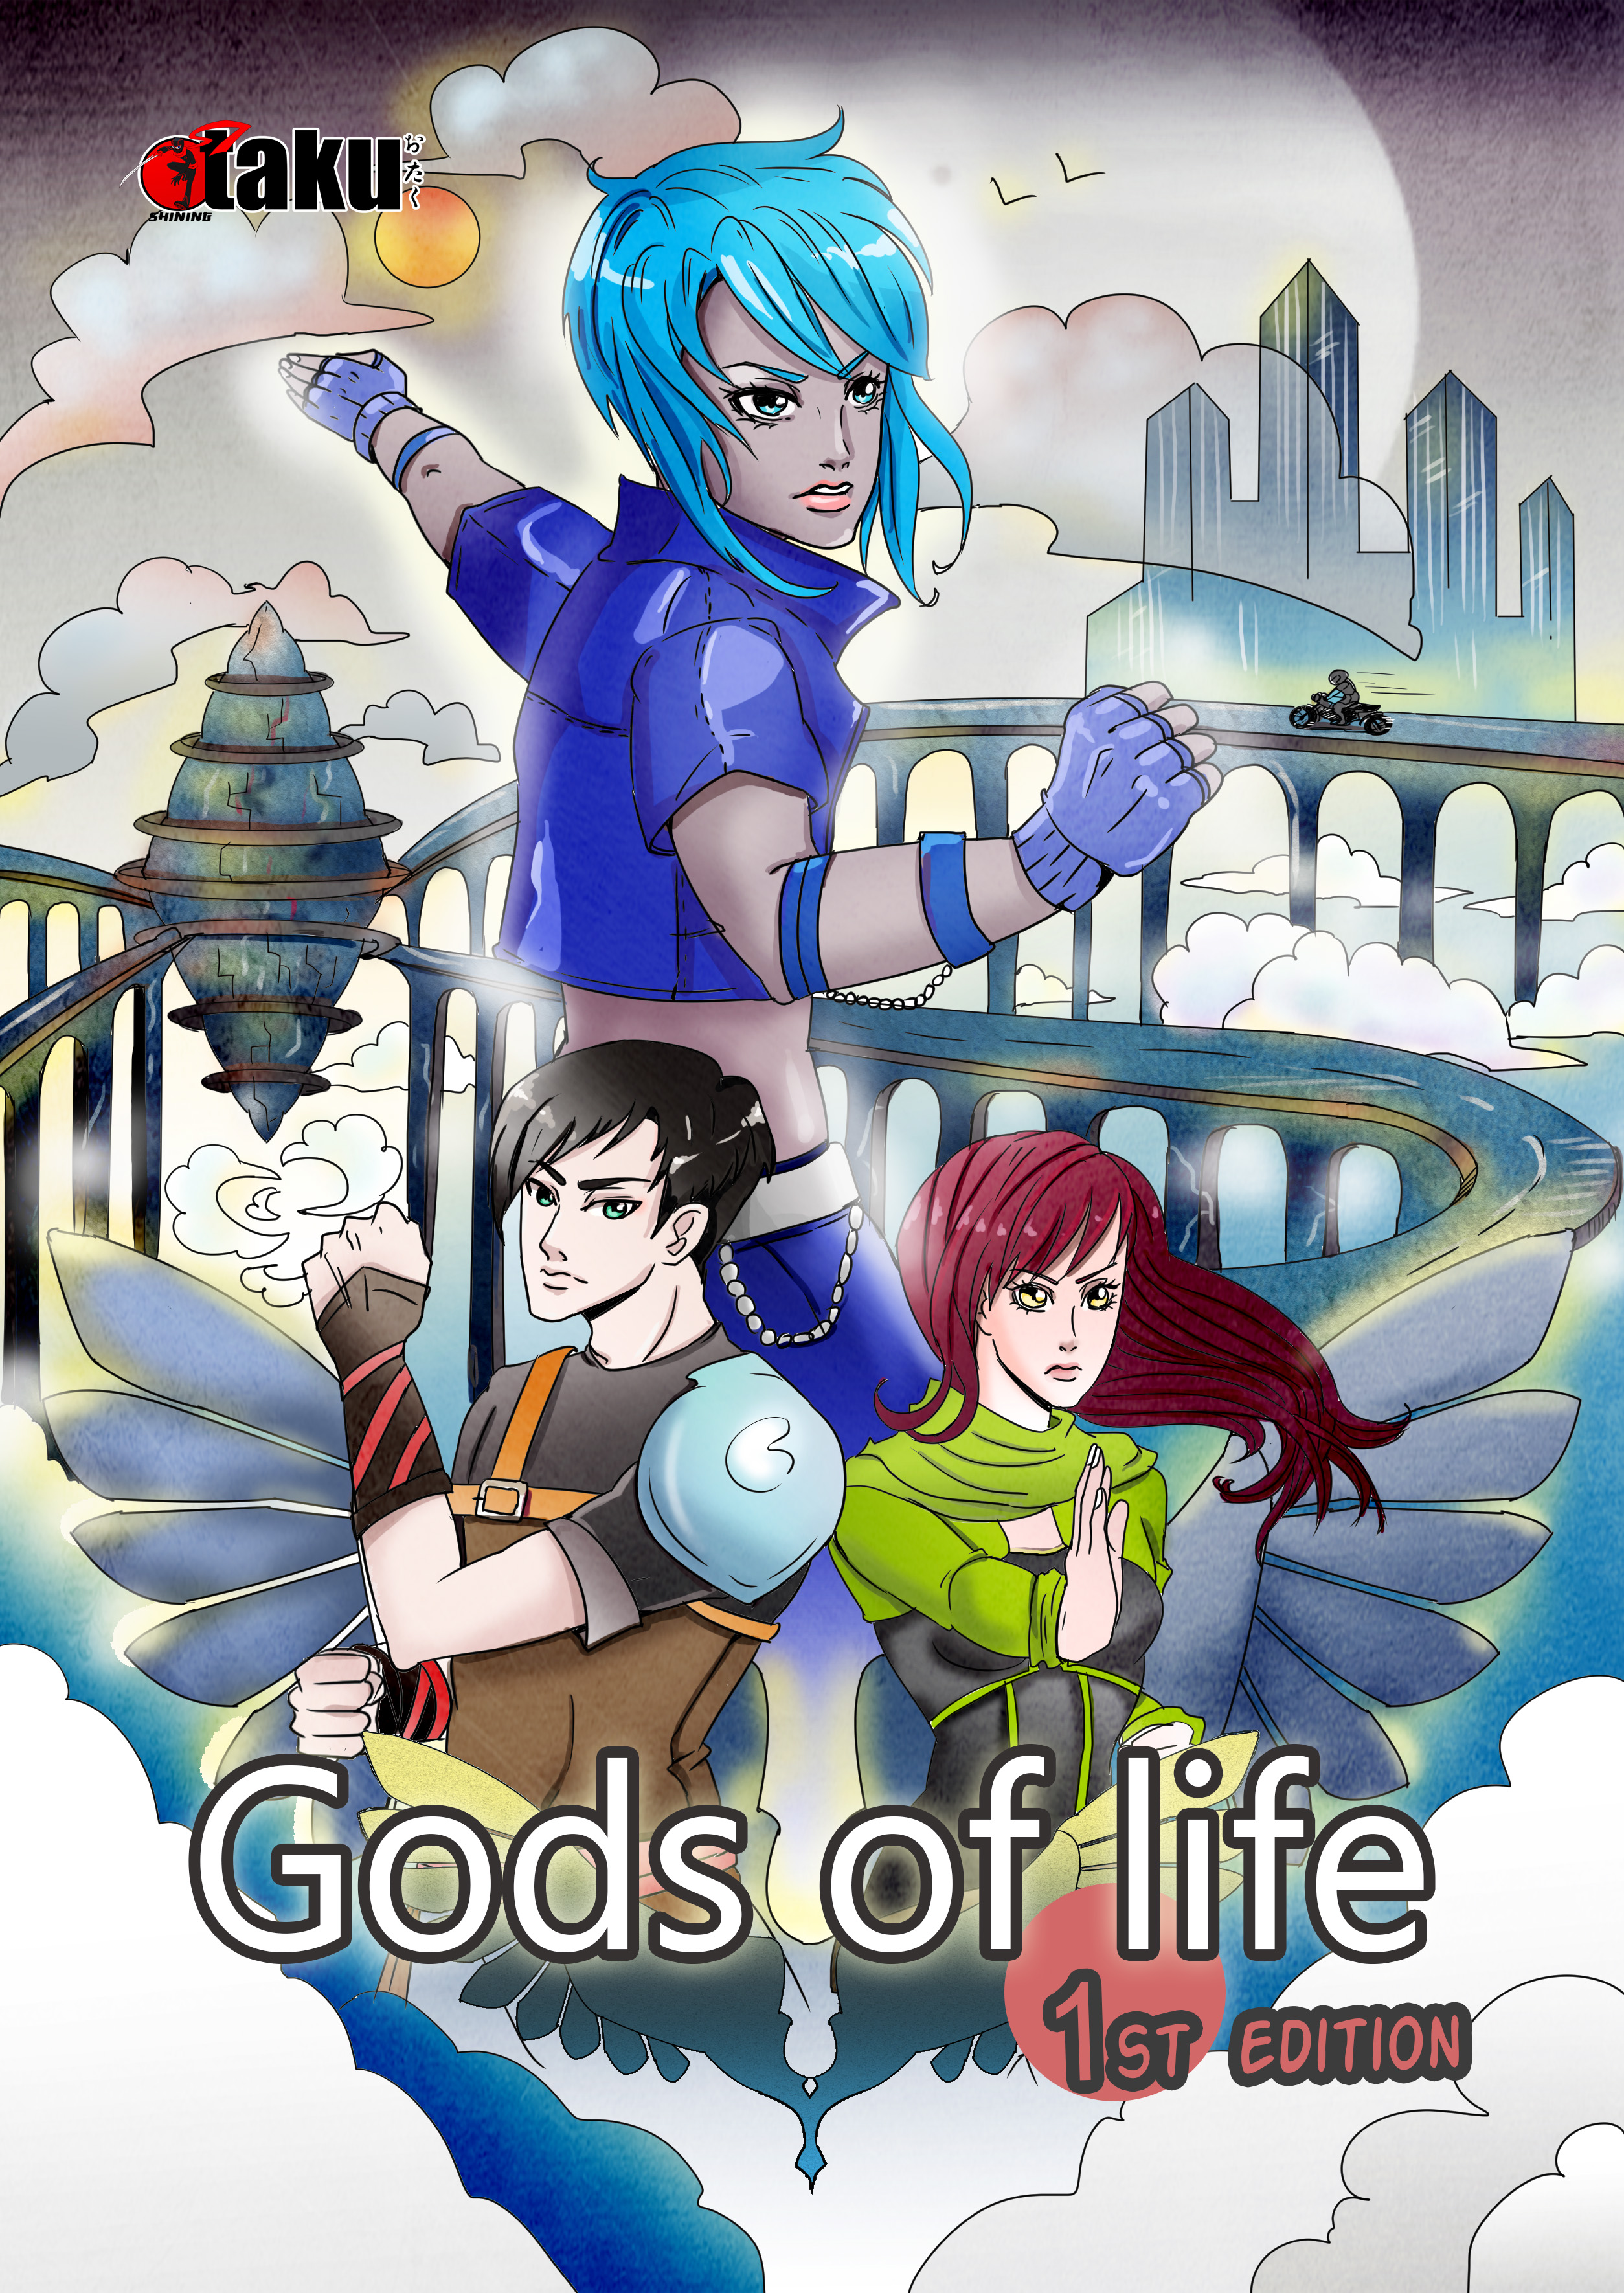 Gods Of Life - Chapter 1: Seed of Beginning - 1